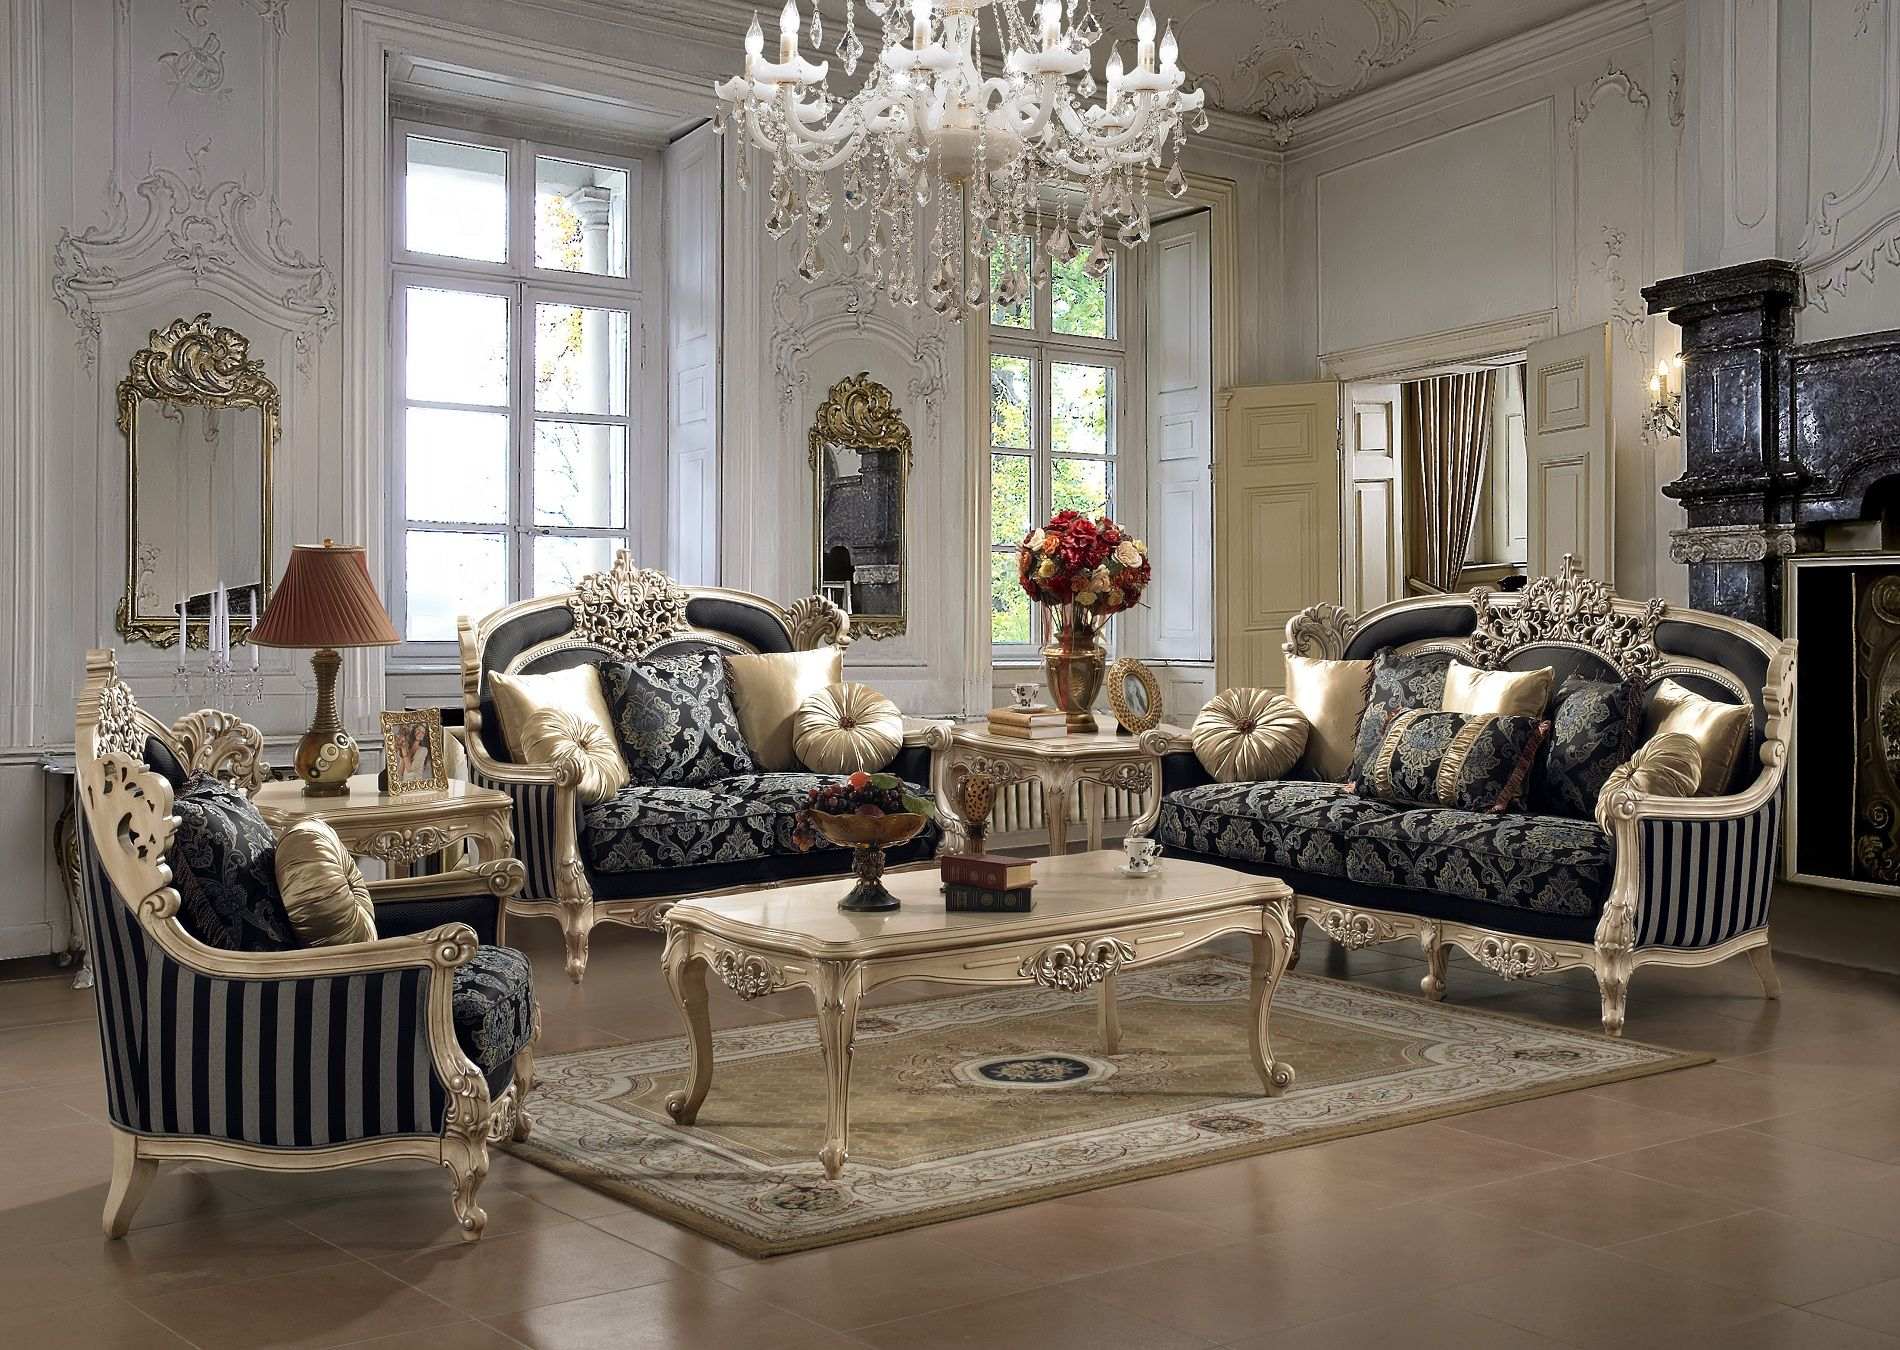 Great Royal Style 3 Piece Living Room Sofa Set With Accent Pillows Part 5